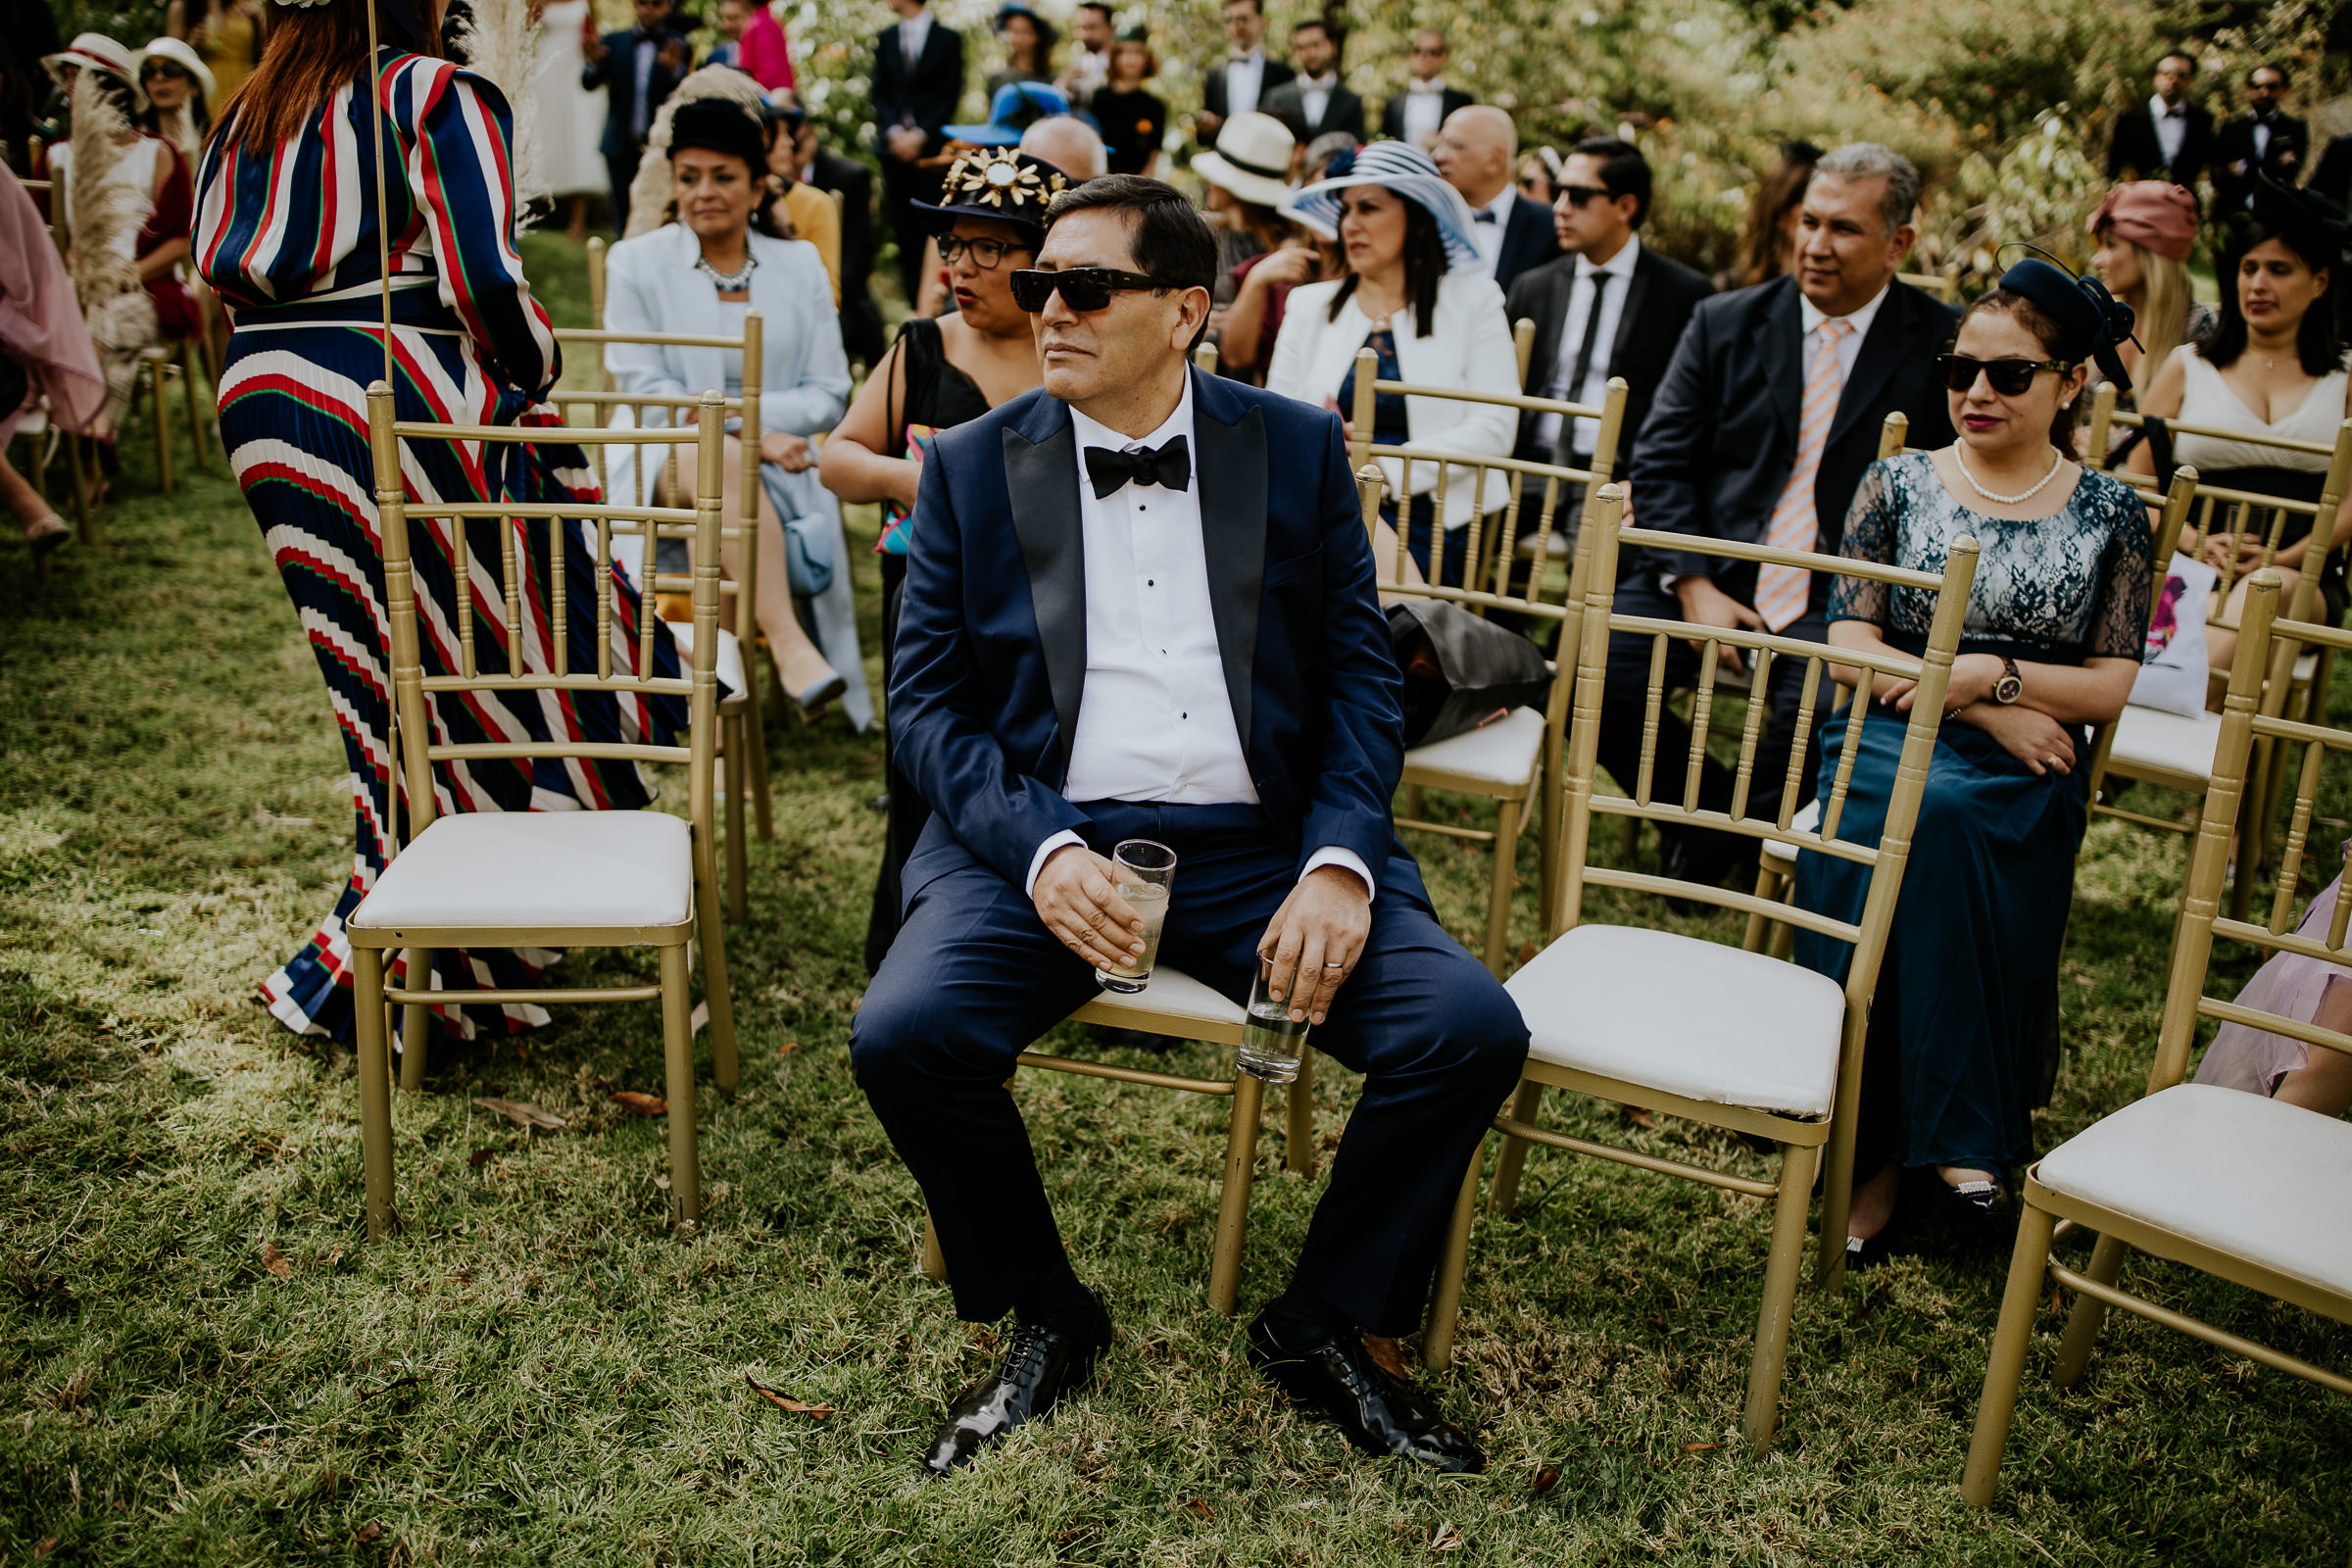 wedding ceremony guest holding two glasses